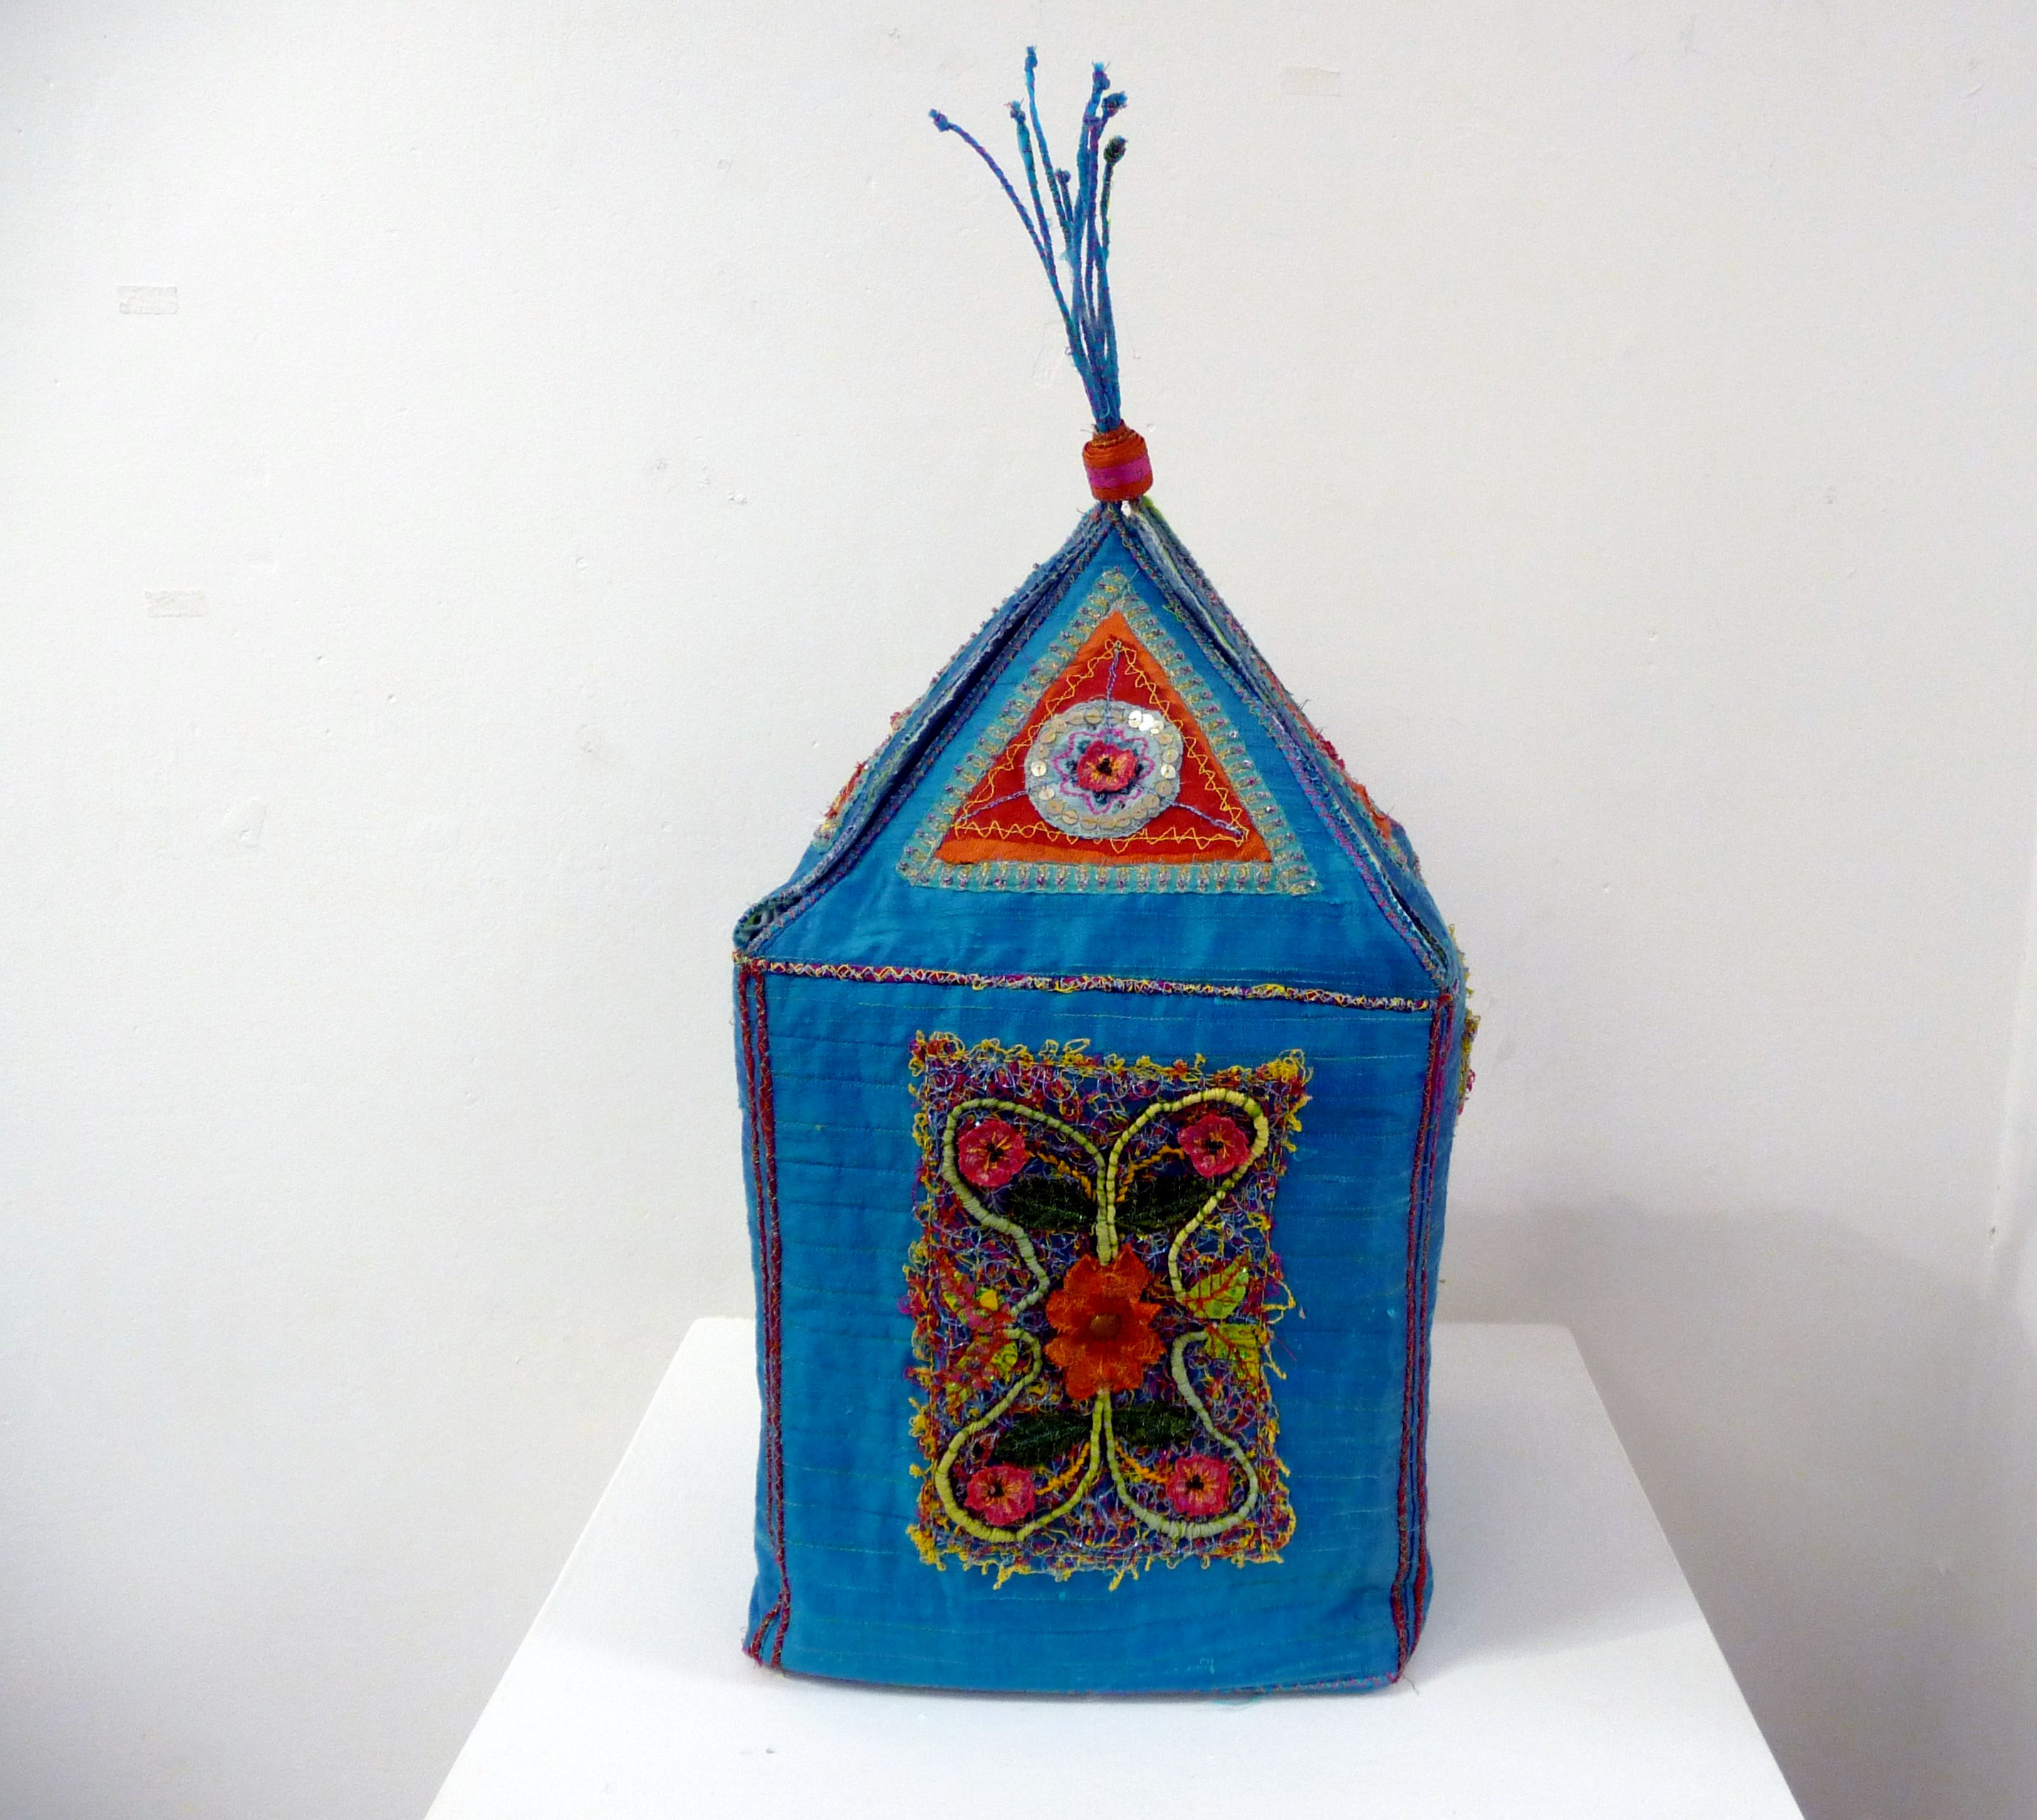 INDIAN-INSPIRED CASKET by Midge Murray of TX Textile group